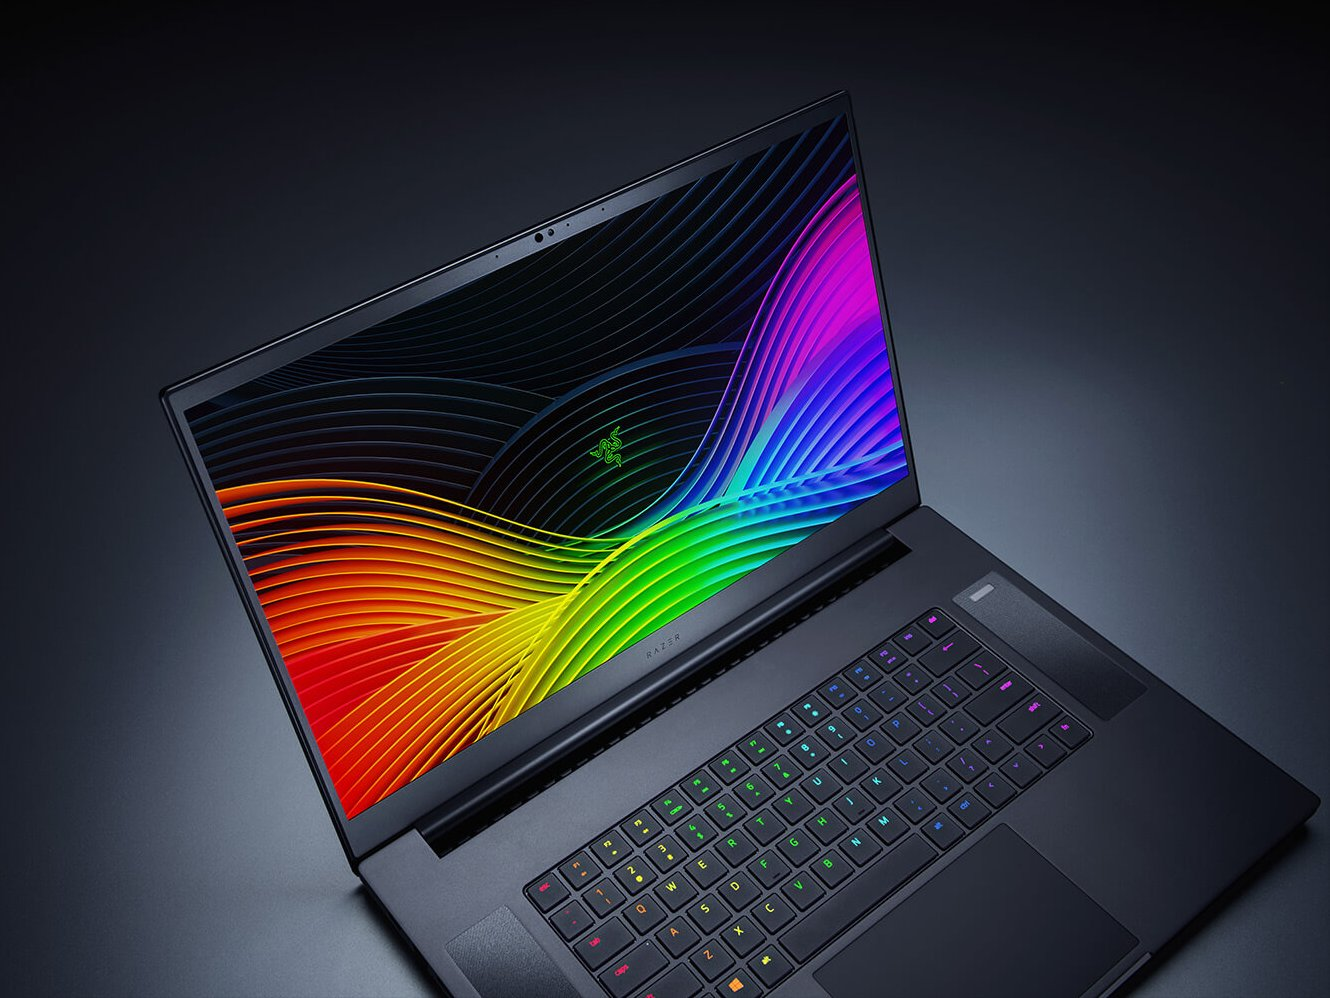 So much better than before: Razer Blade Pro 17 Laptop Review